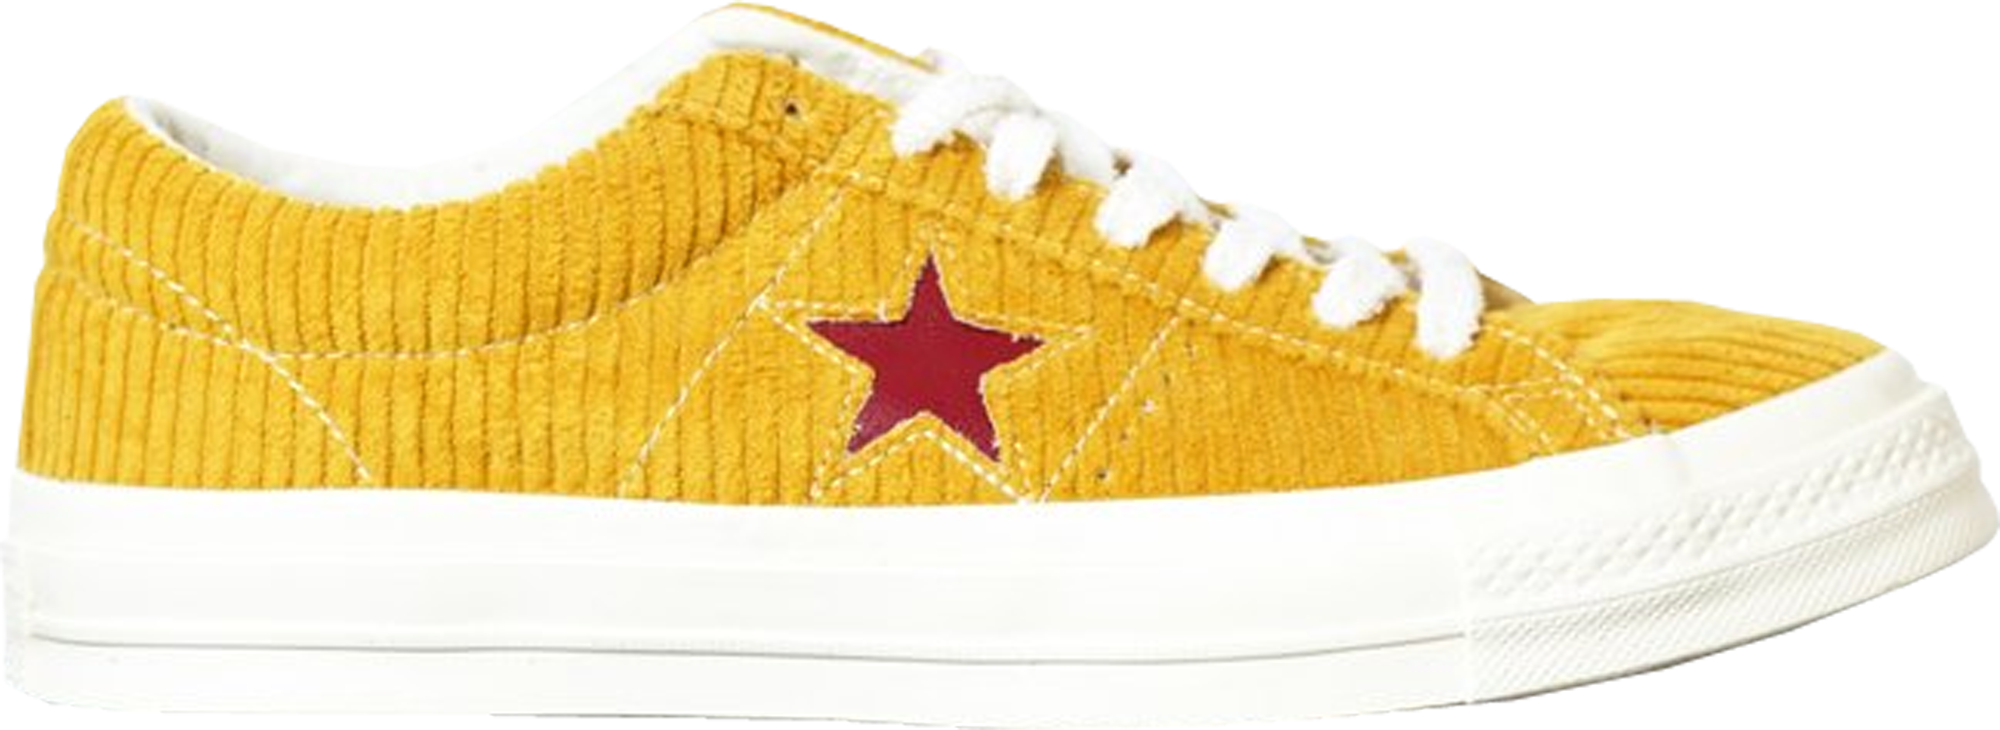 Converse One Star Ox A$AP Nast Mid-Century